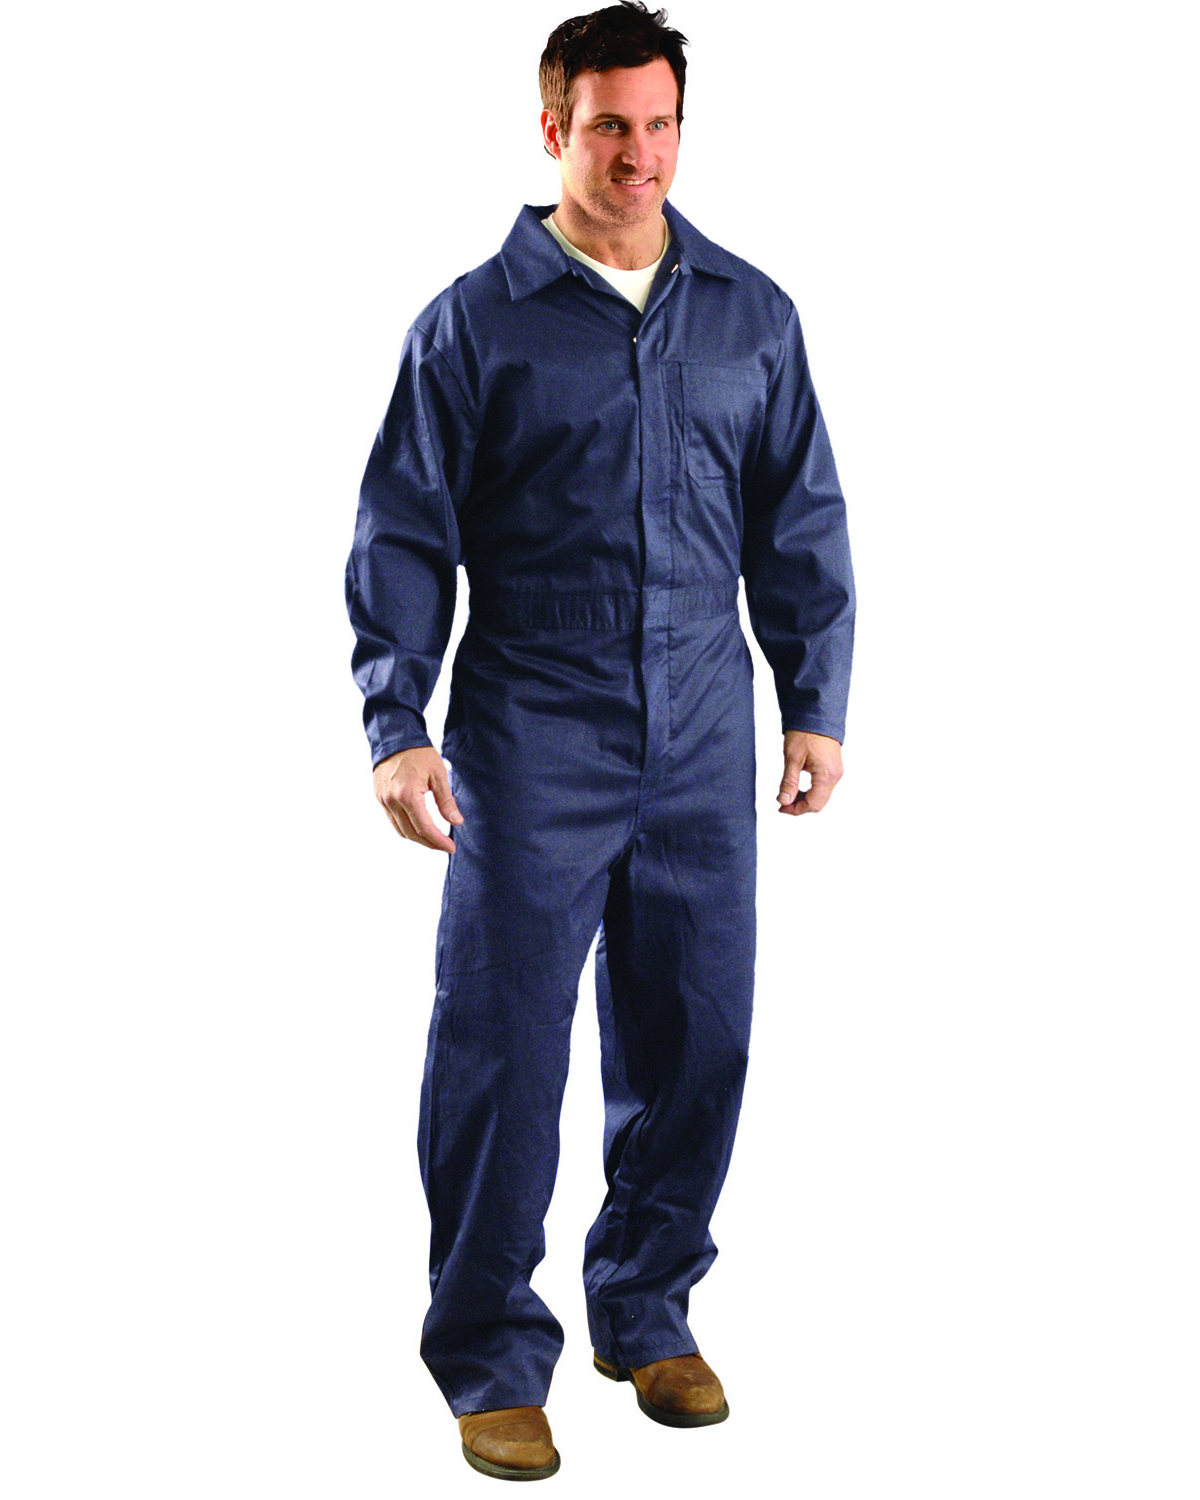 OccuNomix G906 - Men's Value Cotton Flame Resistant HCR 1 Coverall